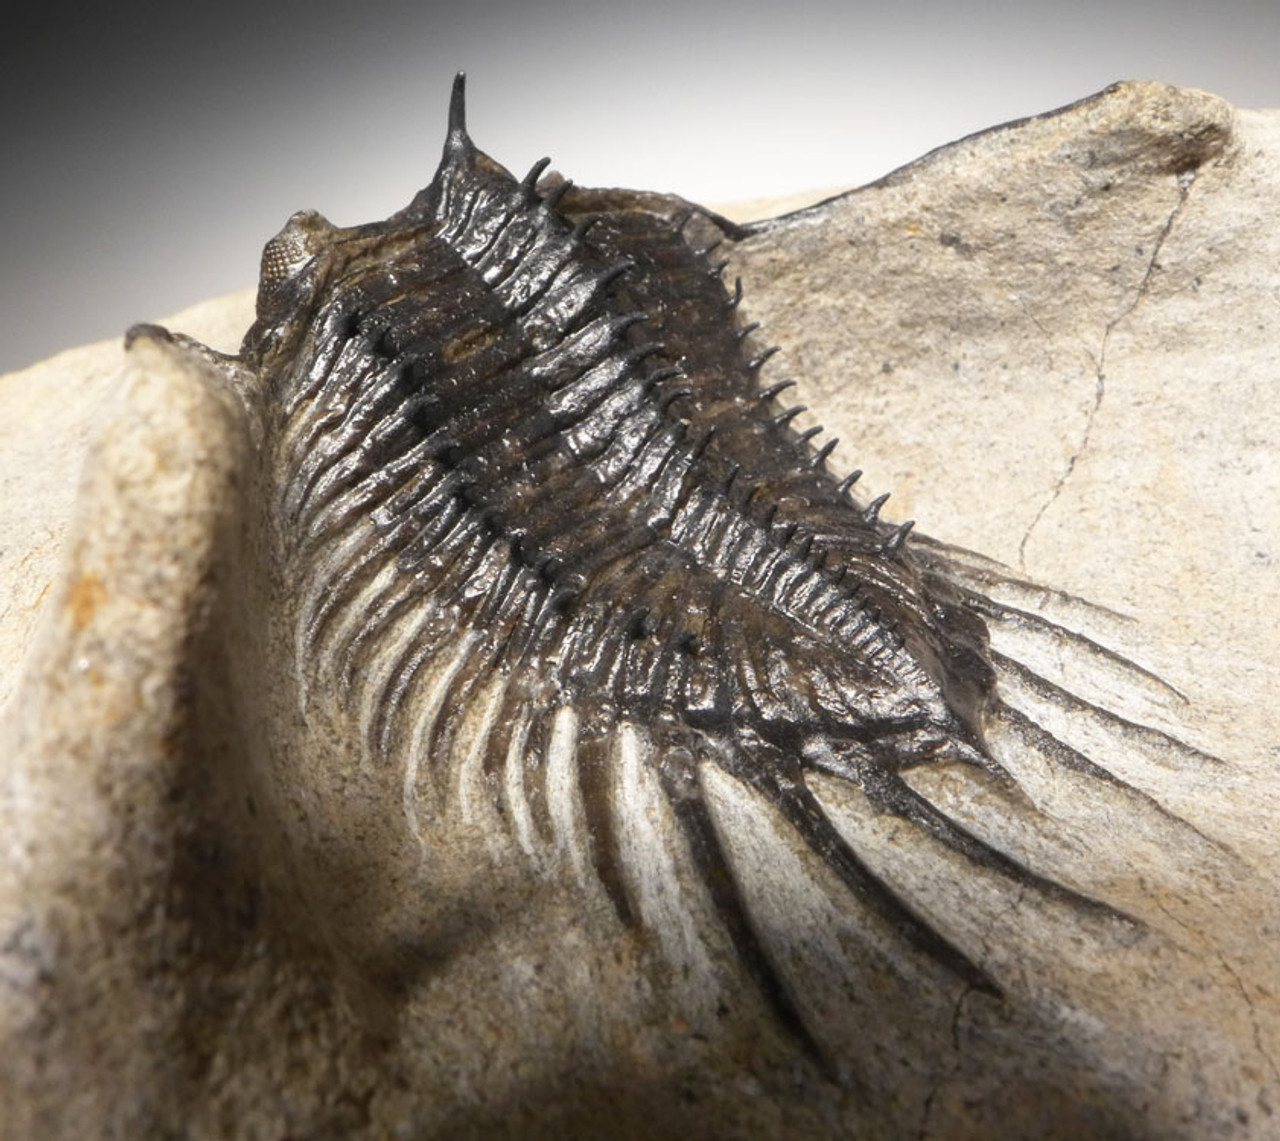 RARE SHORT-SNOUT SPECIES PSYCHOPYGE TRILOBITE WITH FREE-STANDING SPINES *TRX399